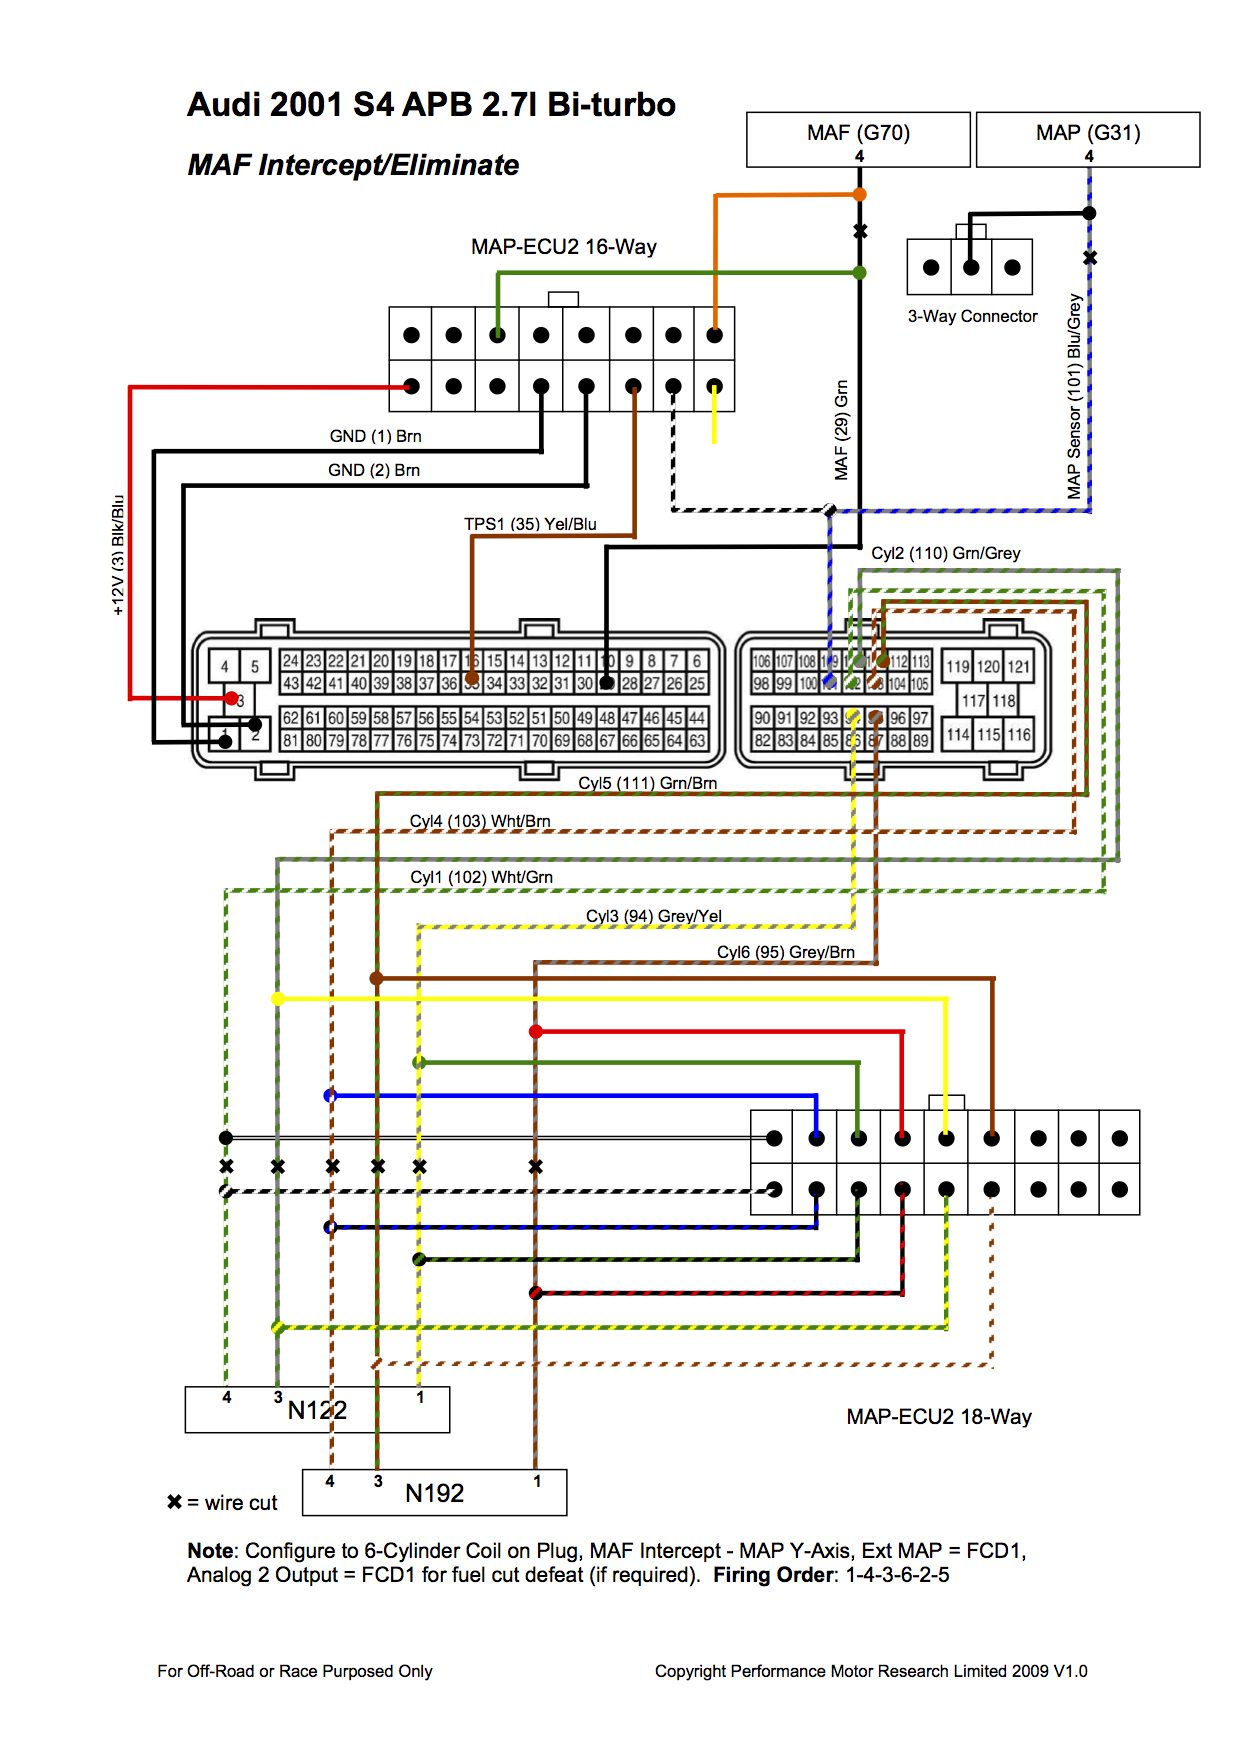 hight resolution of metra wiring harness diagram 2001 pt cruiser wiring diagrams metra 70 1729 wiring diagram 2008